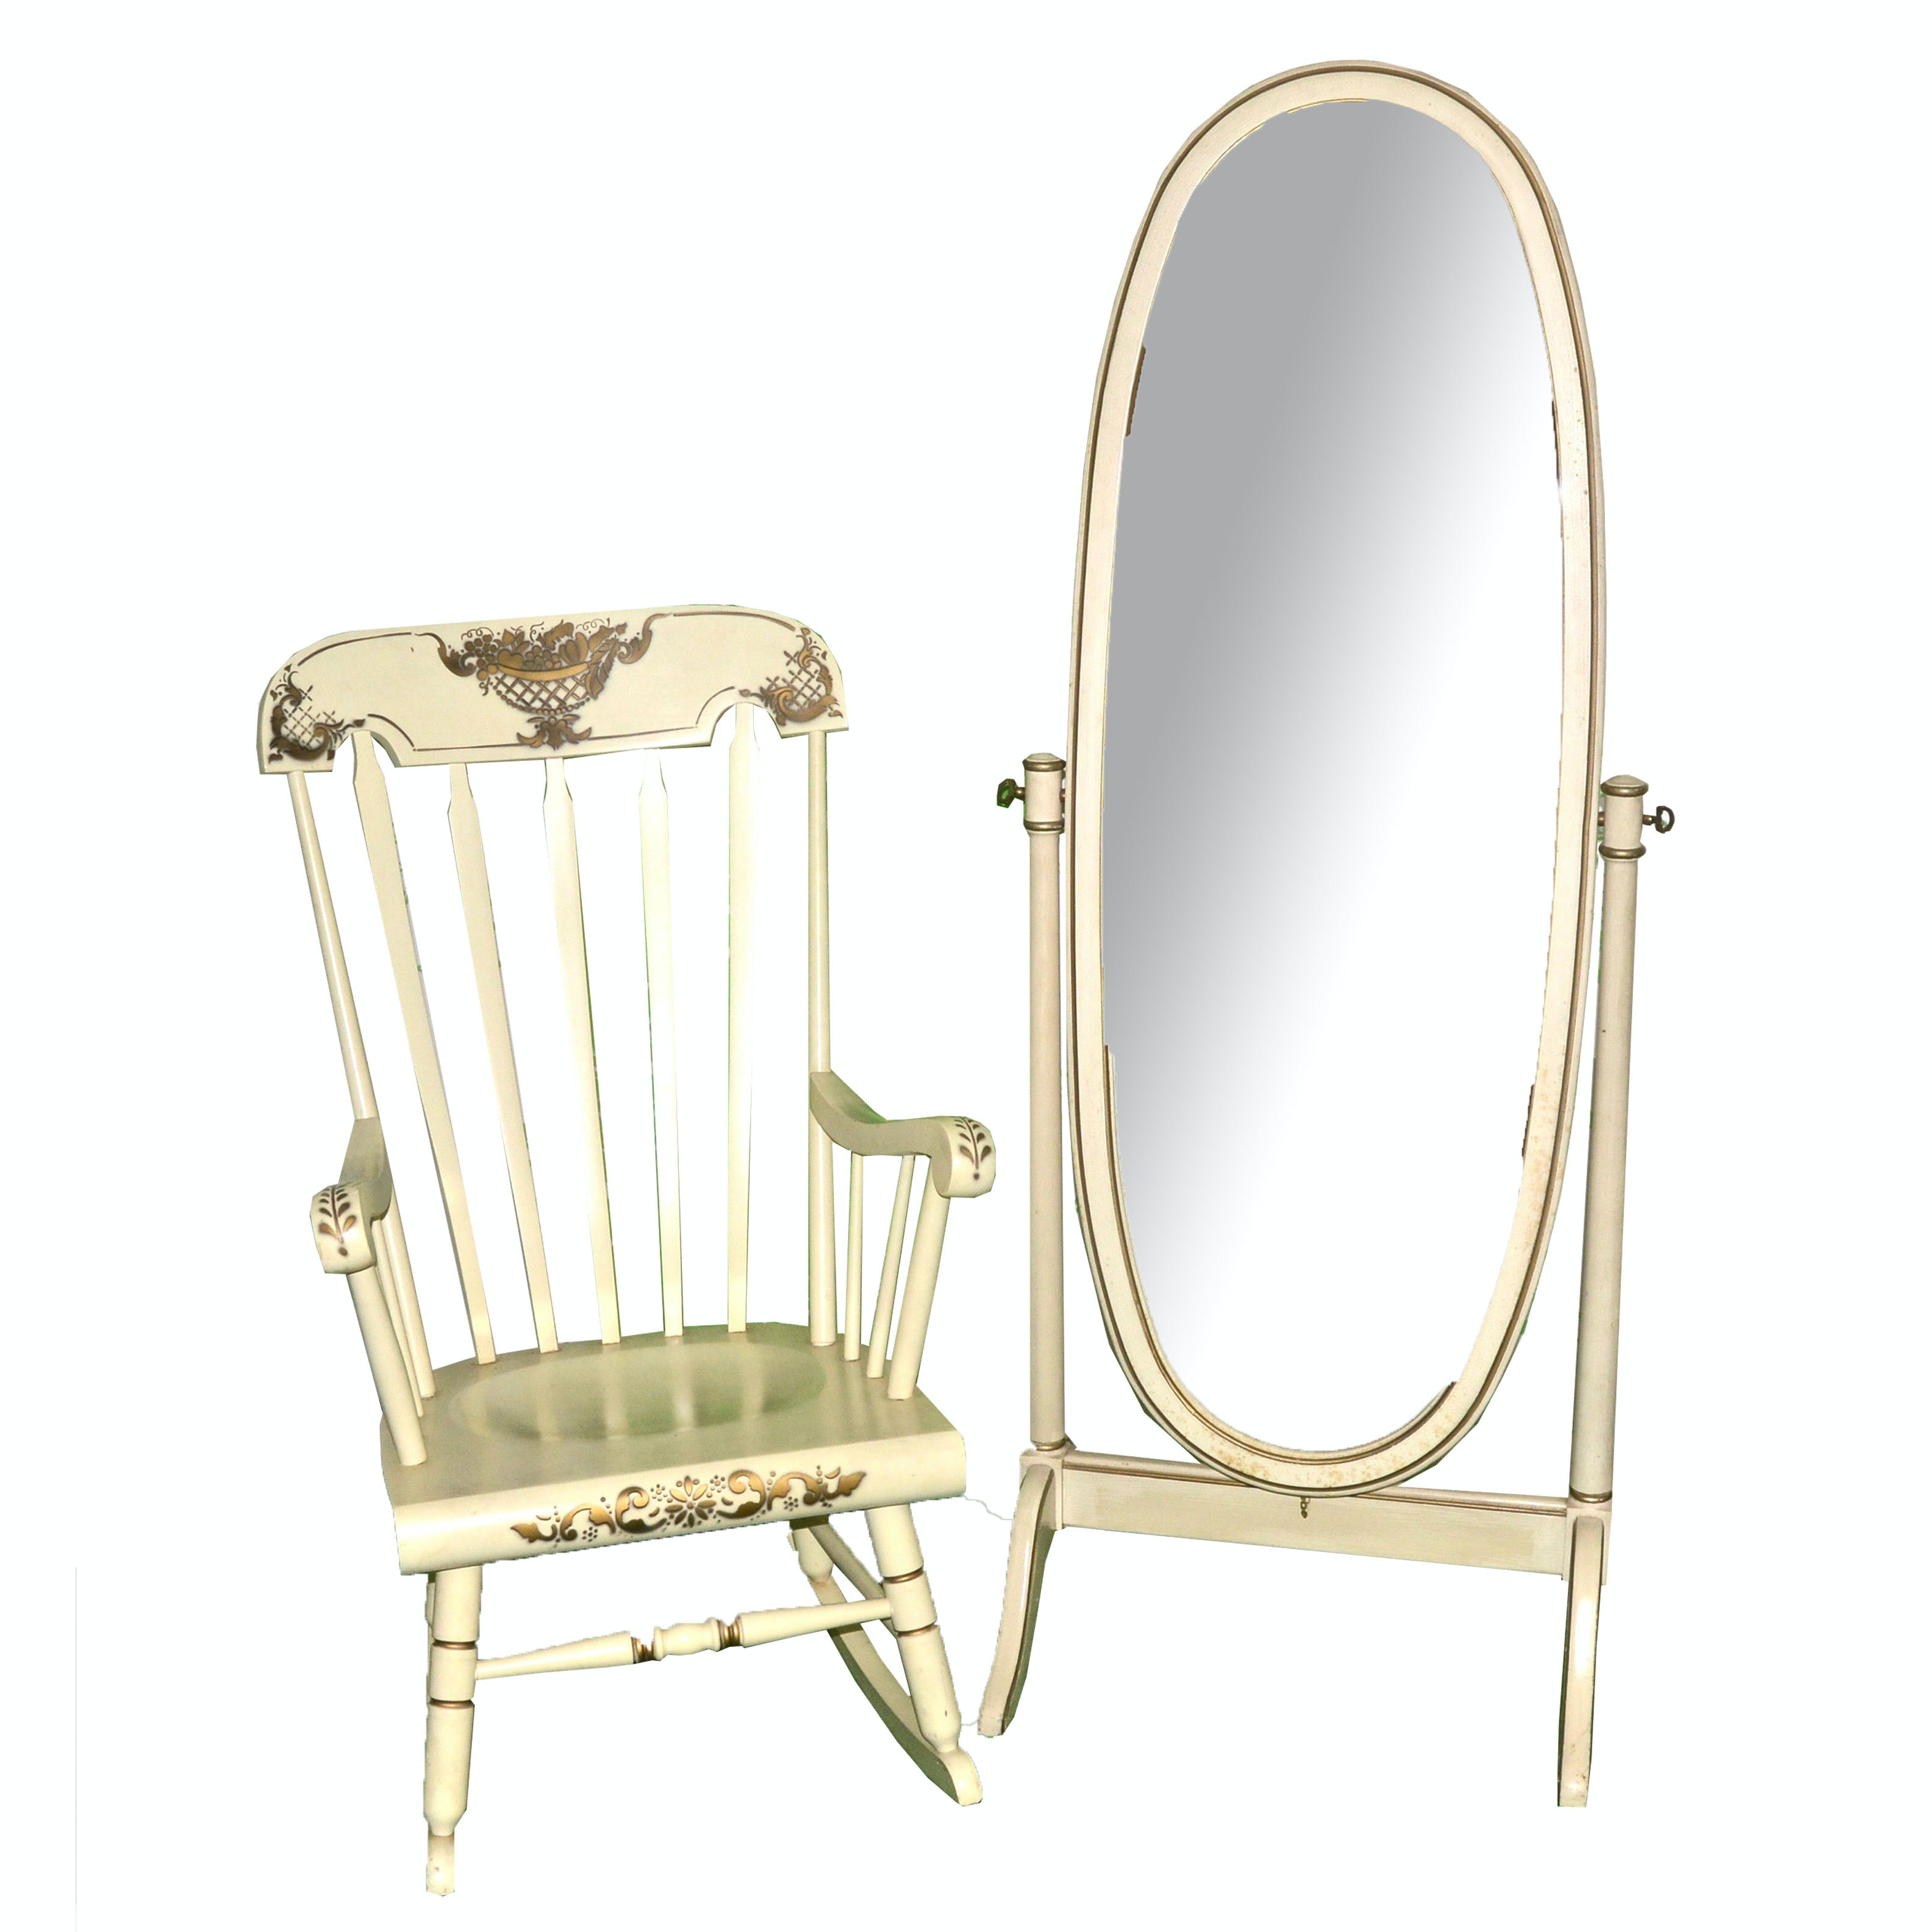 Wooden Rocking Chair and Full-Length Swivel Mirror